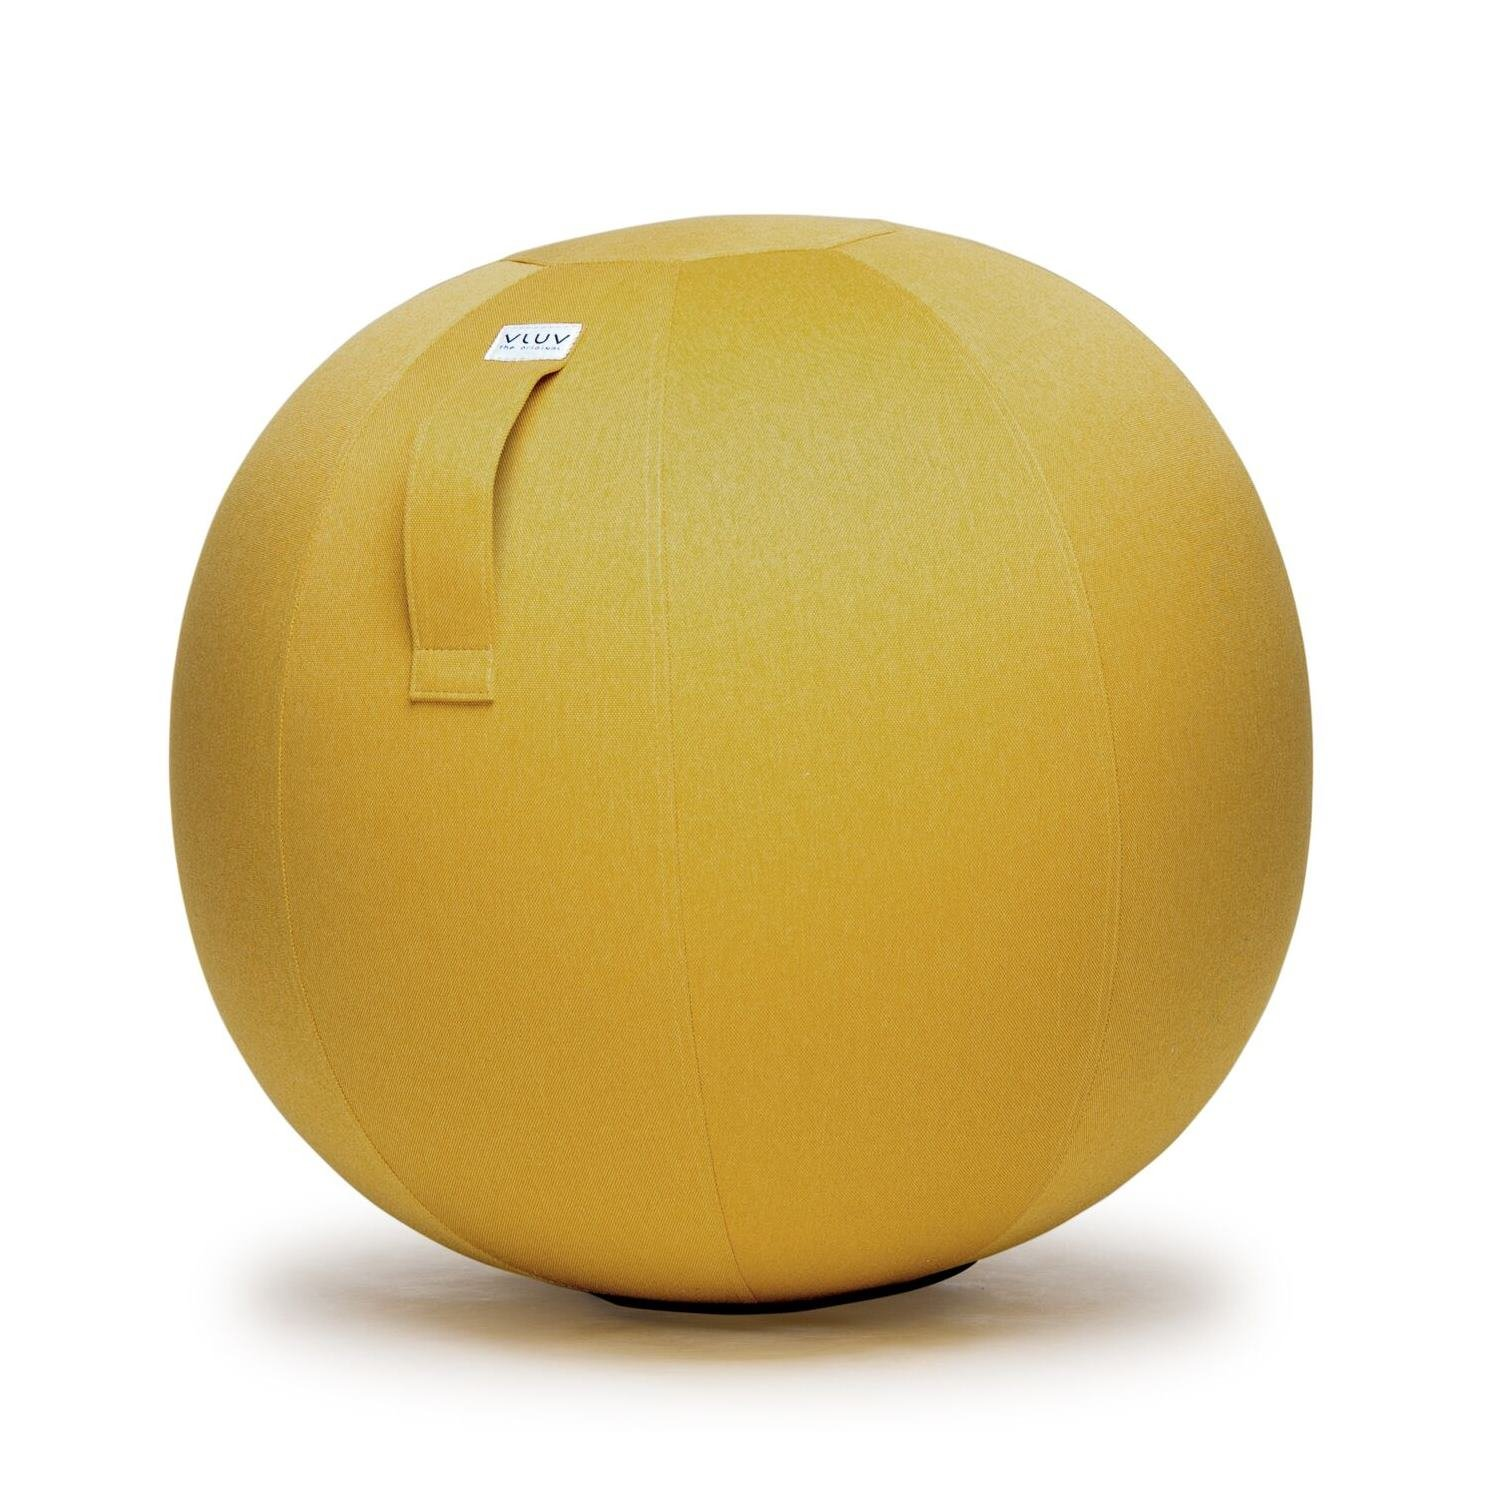 VLUV LEIV 29.5'' Premium Quality Self-Standing Sitting Ball with Handle - Home or Office Chair and Exercise Ball for Yoga, Stretching, or Gym Stone Colored Canvas Fabric (Mustard Colored, 29.5'')